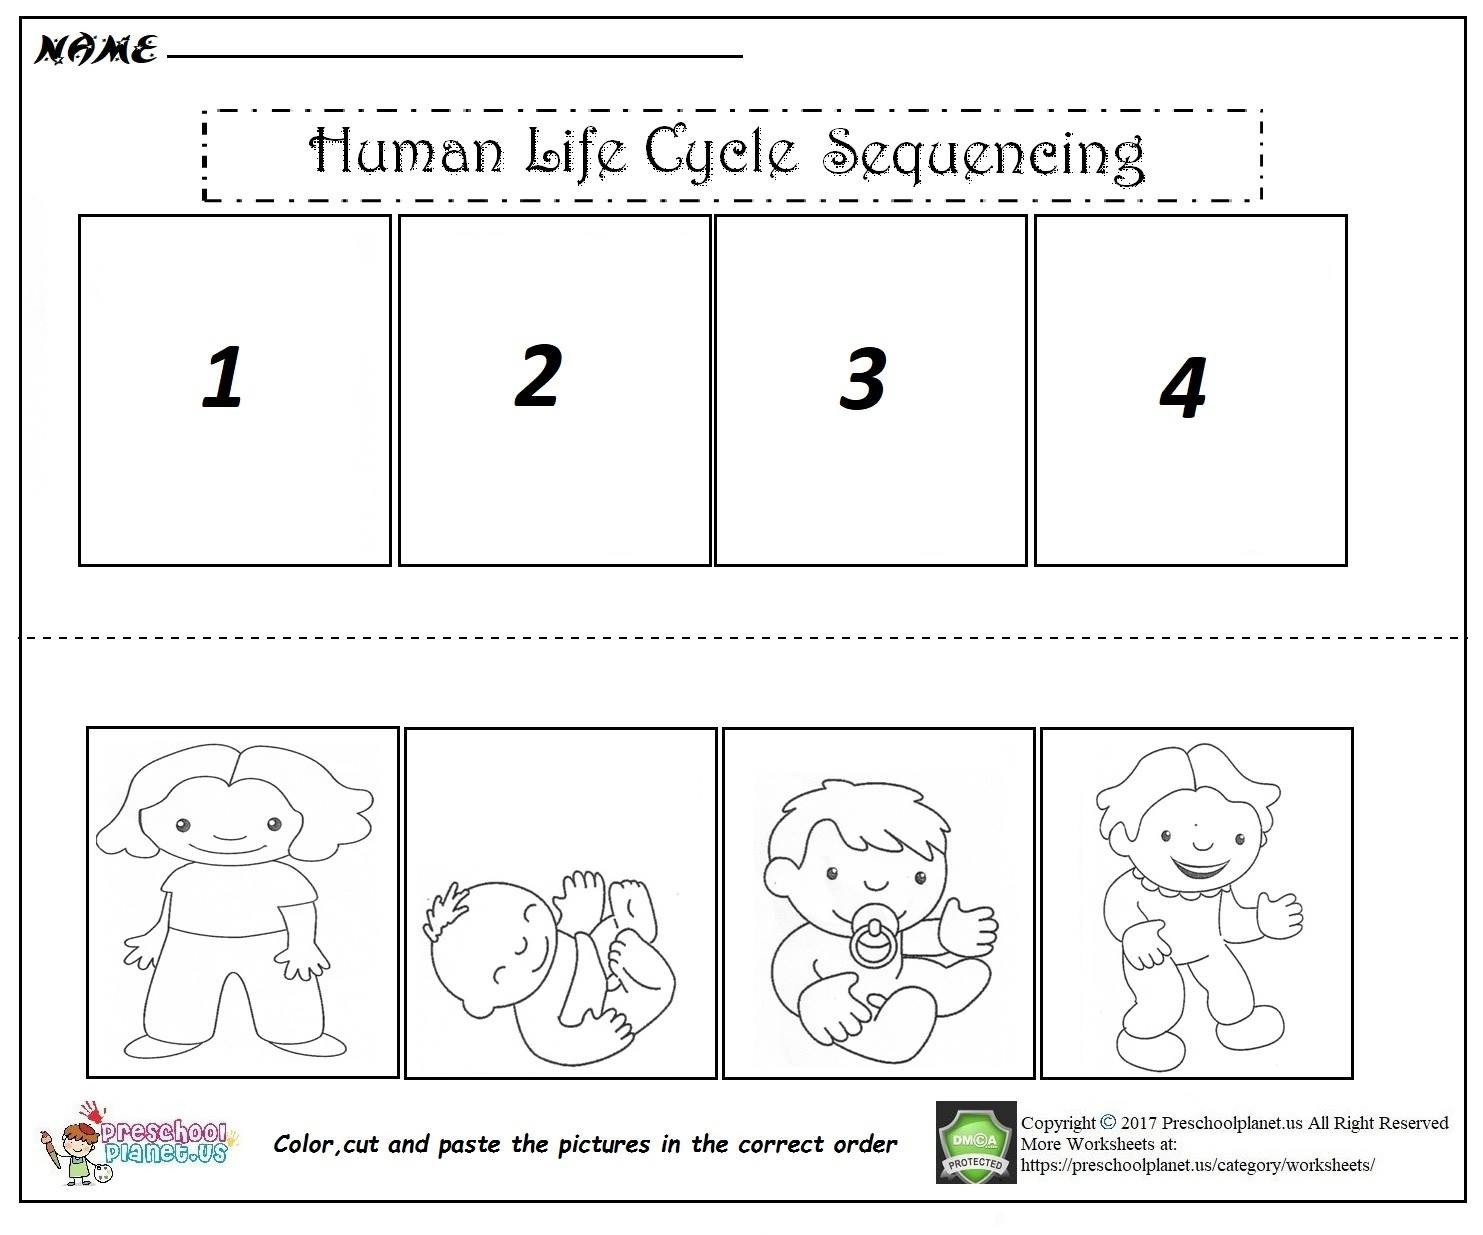 Sequencing Picture Worksheets Human Life Cycle Sequencing Worksheet – Preschoolplanet